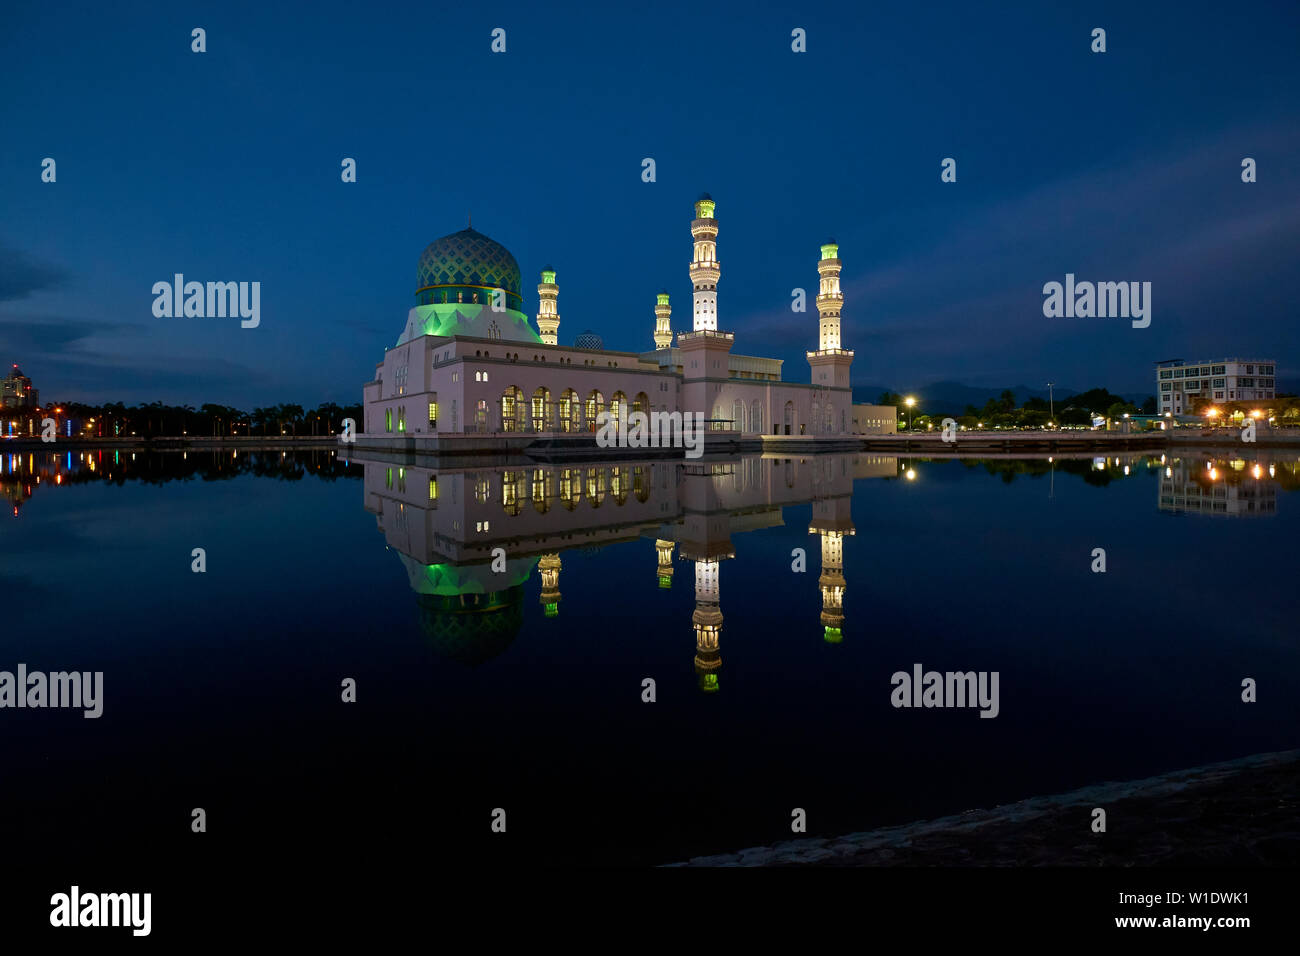 The Moorish style main city Mosque, Masjid Bandaraya, reflected at dusk in Kota Kinabalu, Borneo, Malaysia. - Stock Image